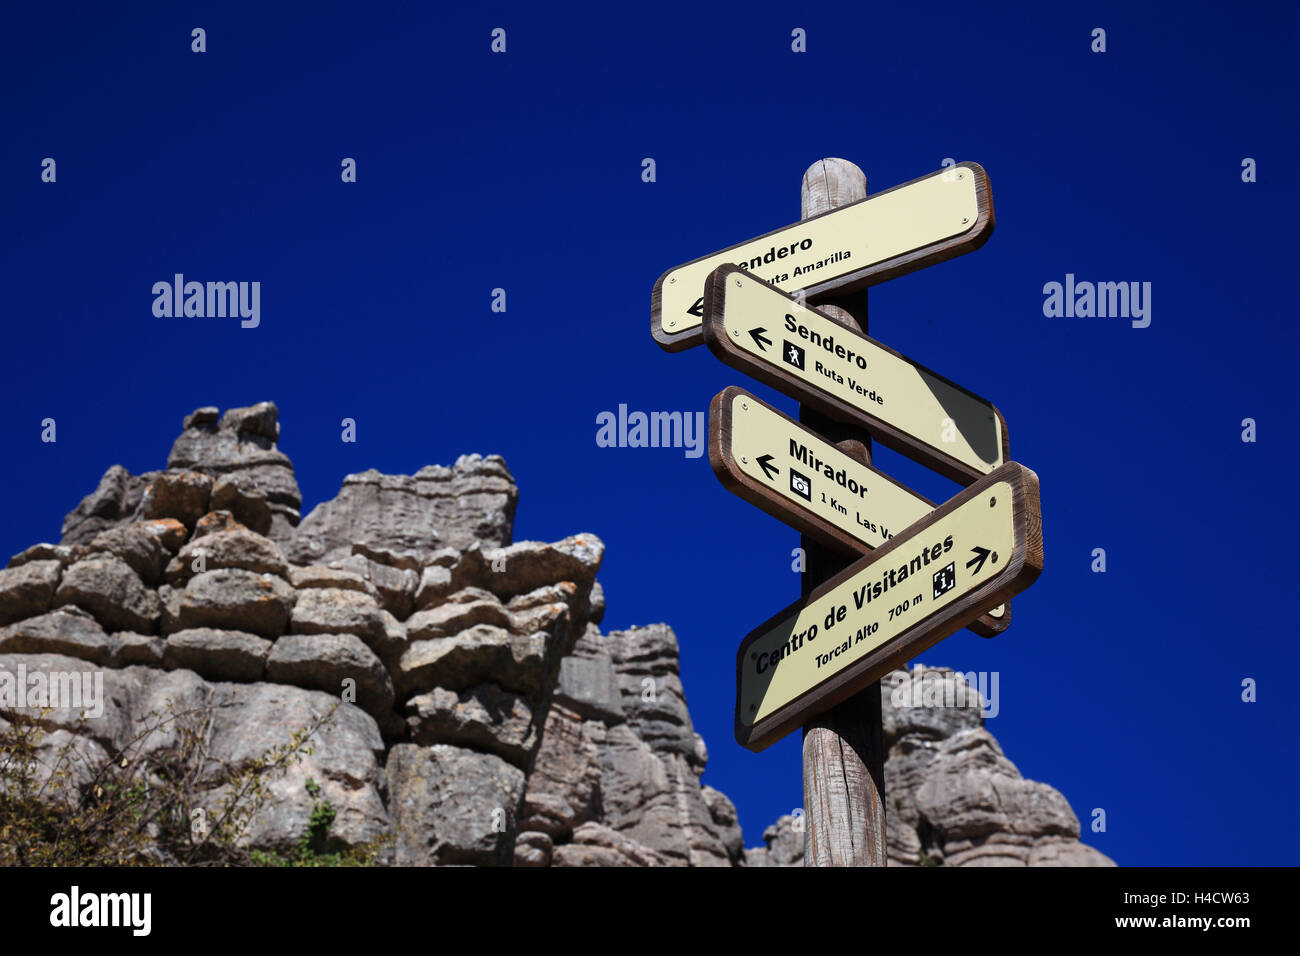 Signs in the national park tablespoons goal cal, Paraje Natural goal cal de Antequera, is of a 1171-ha-nature reserve - Stock Image